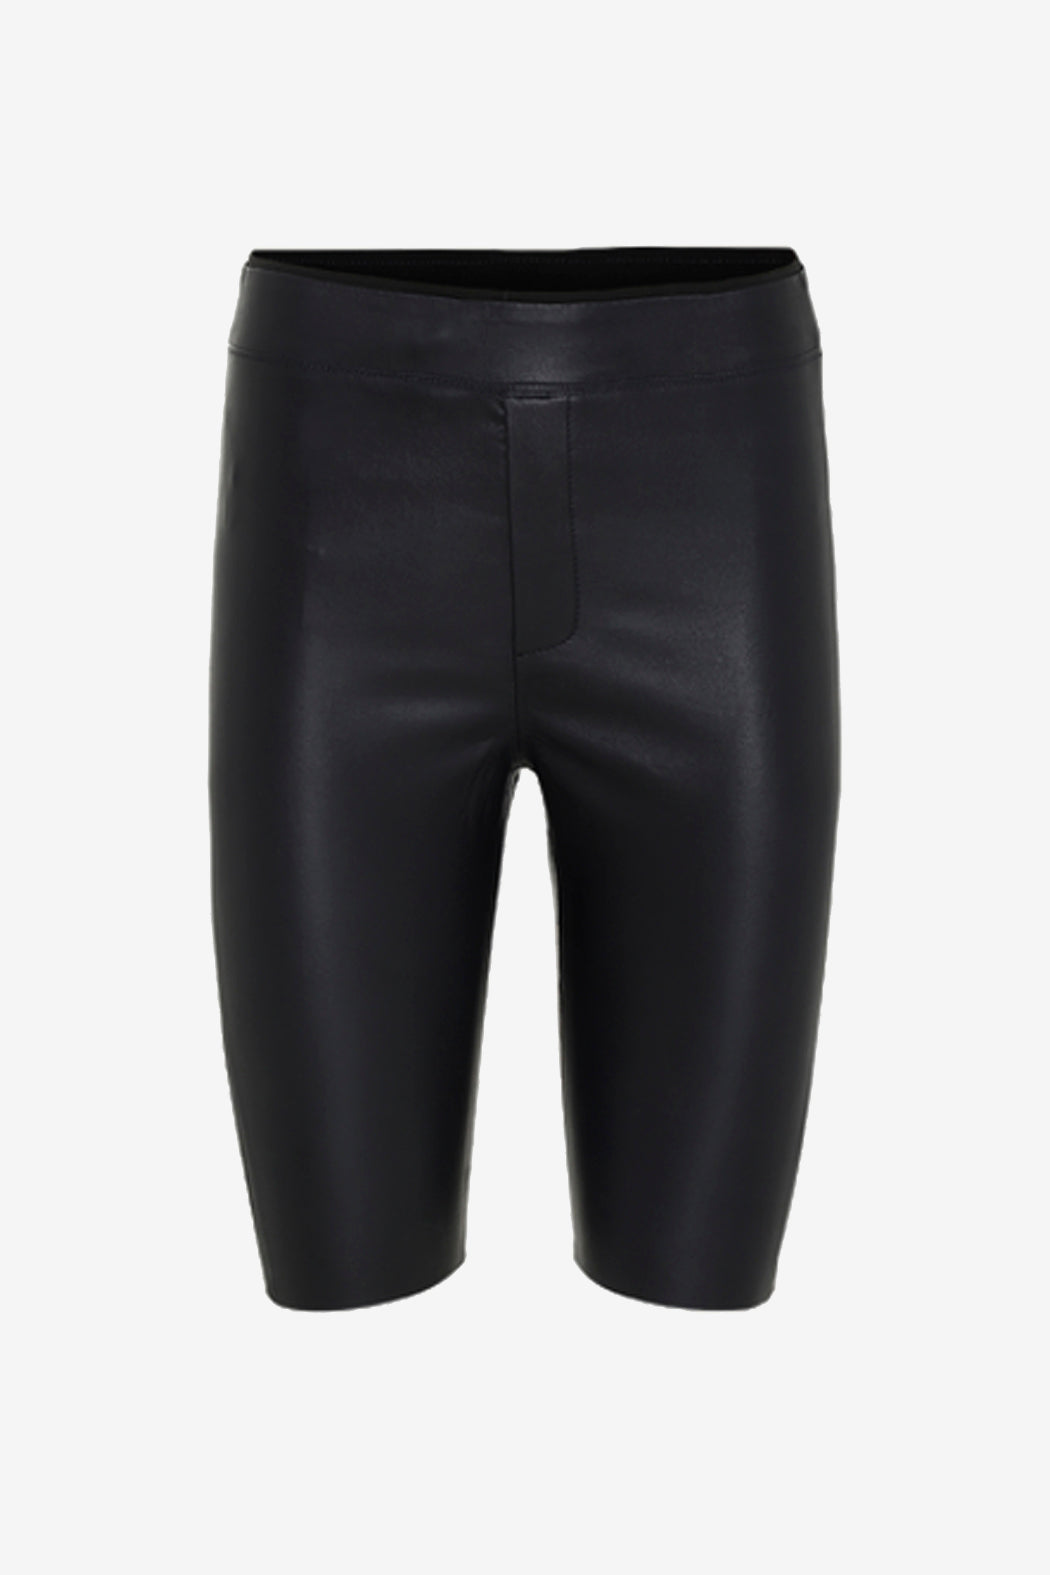 Snipe Leather Shorts